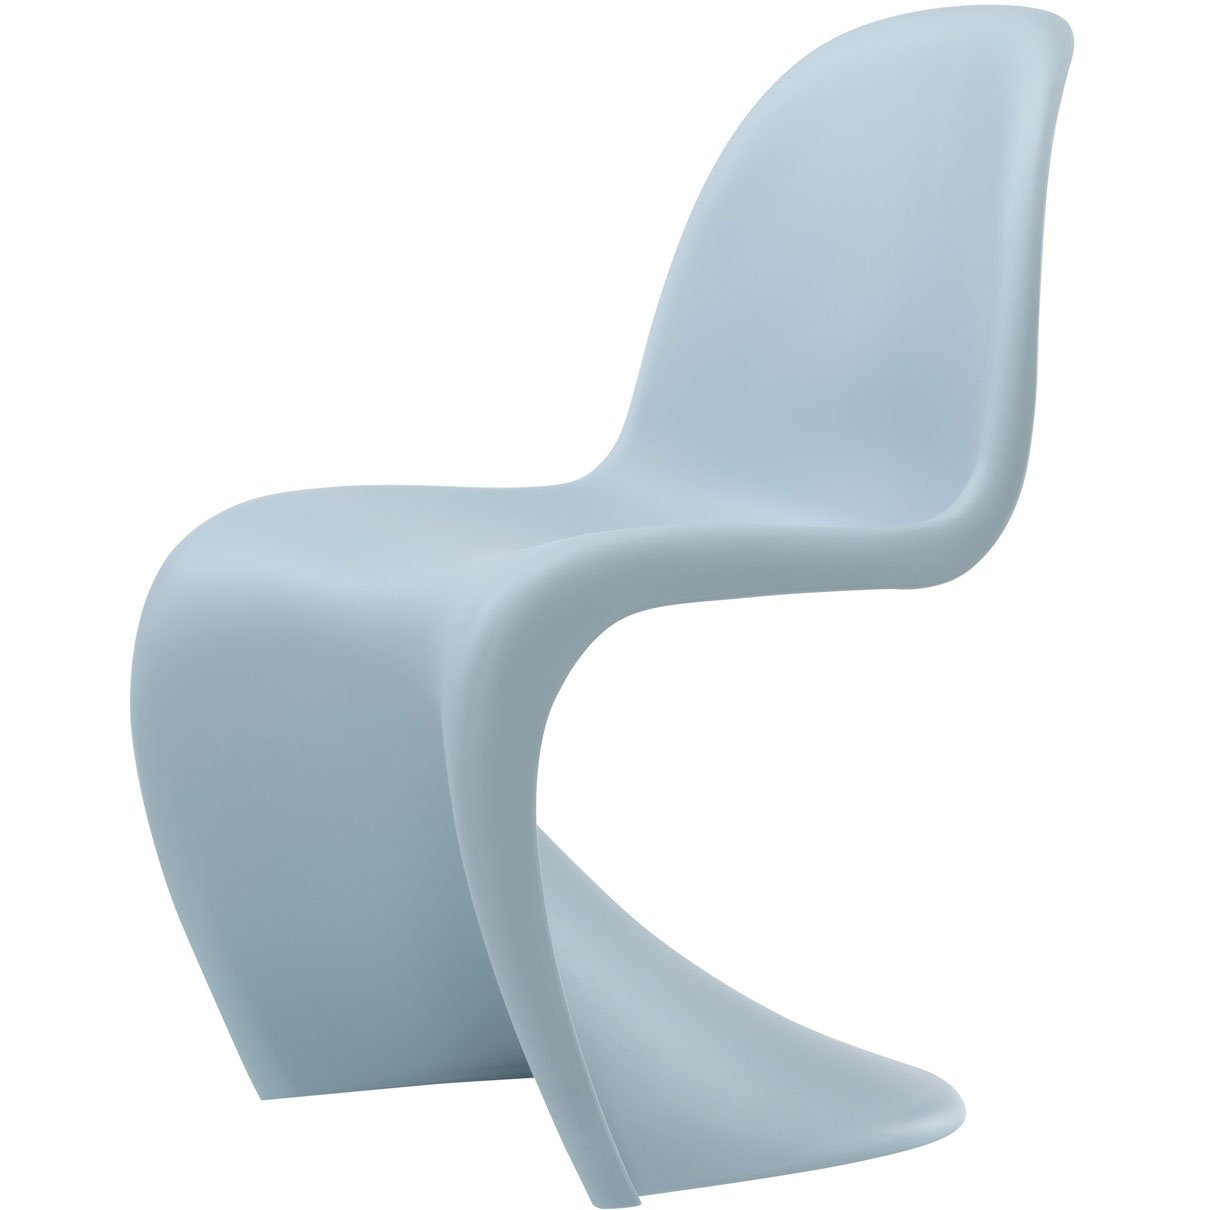 10 gift ideas for Christmas Panton Chair